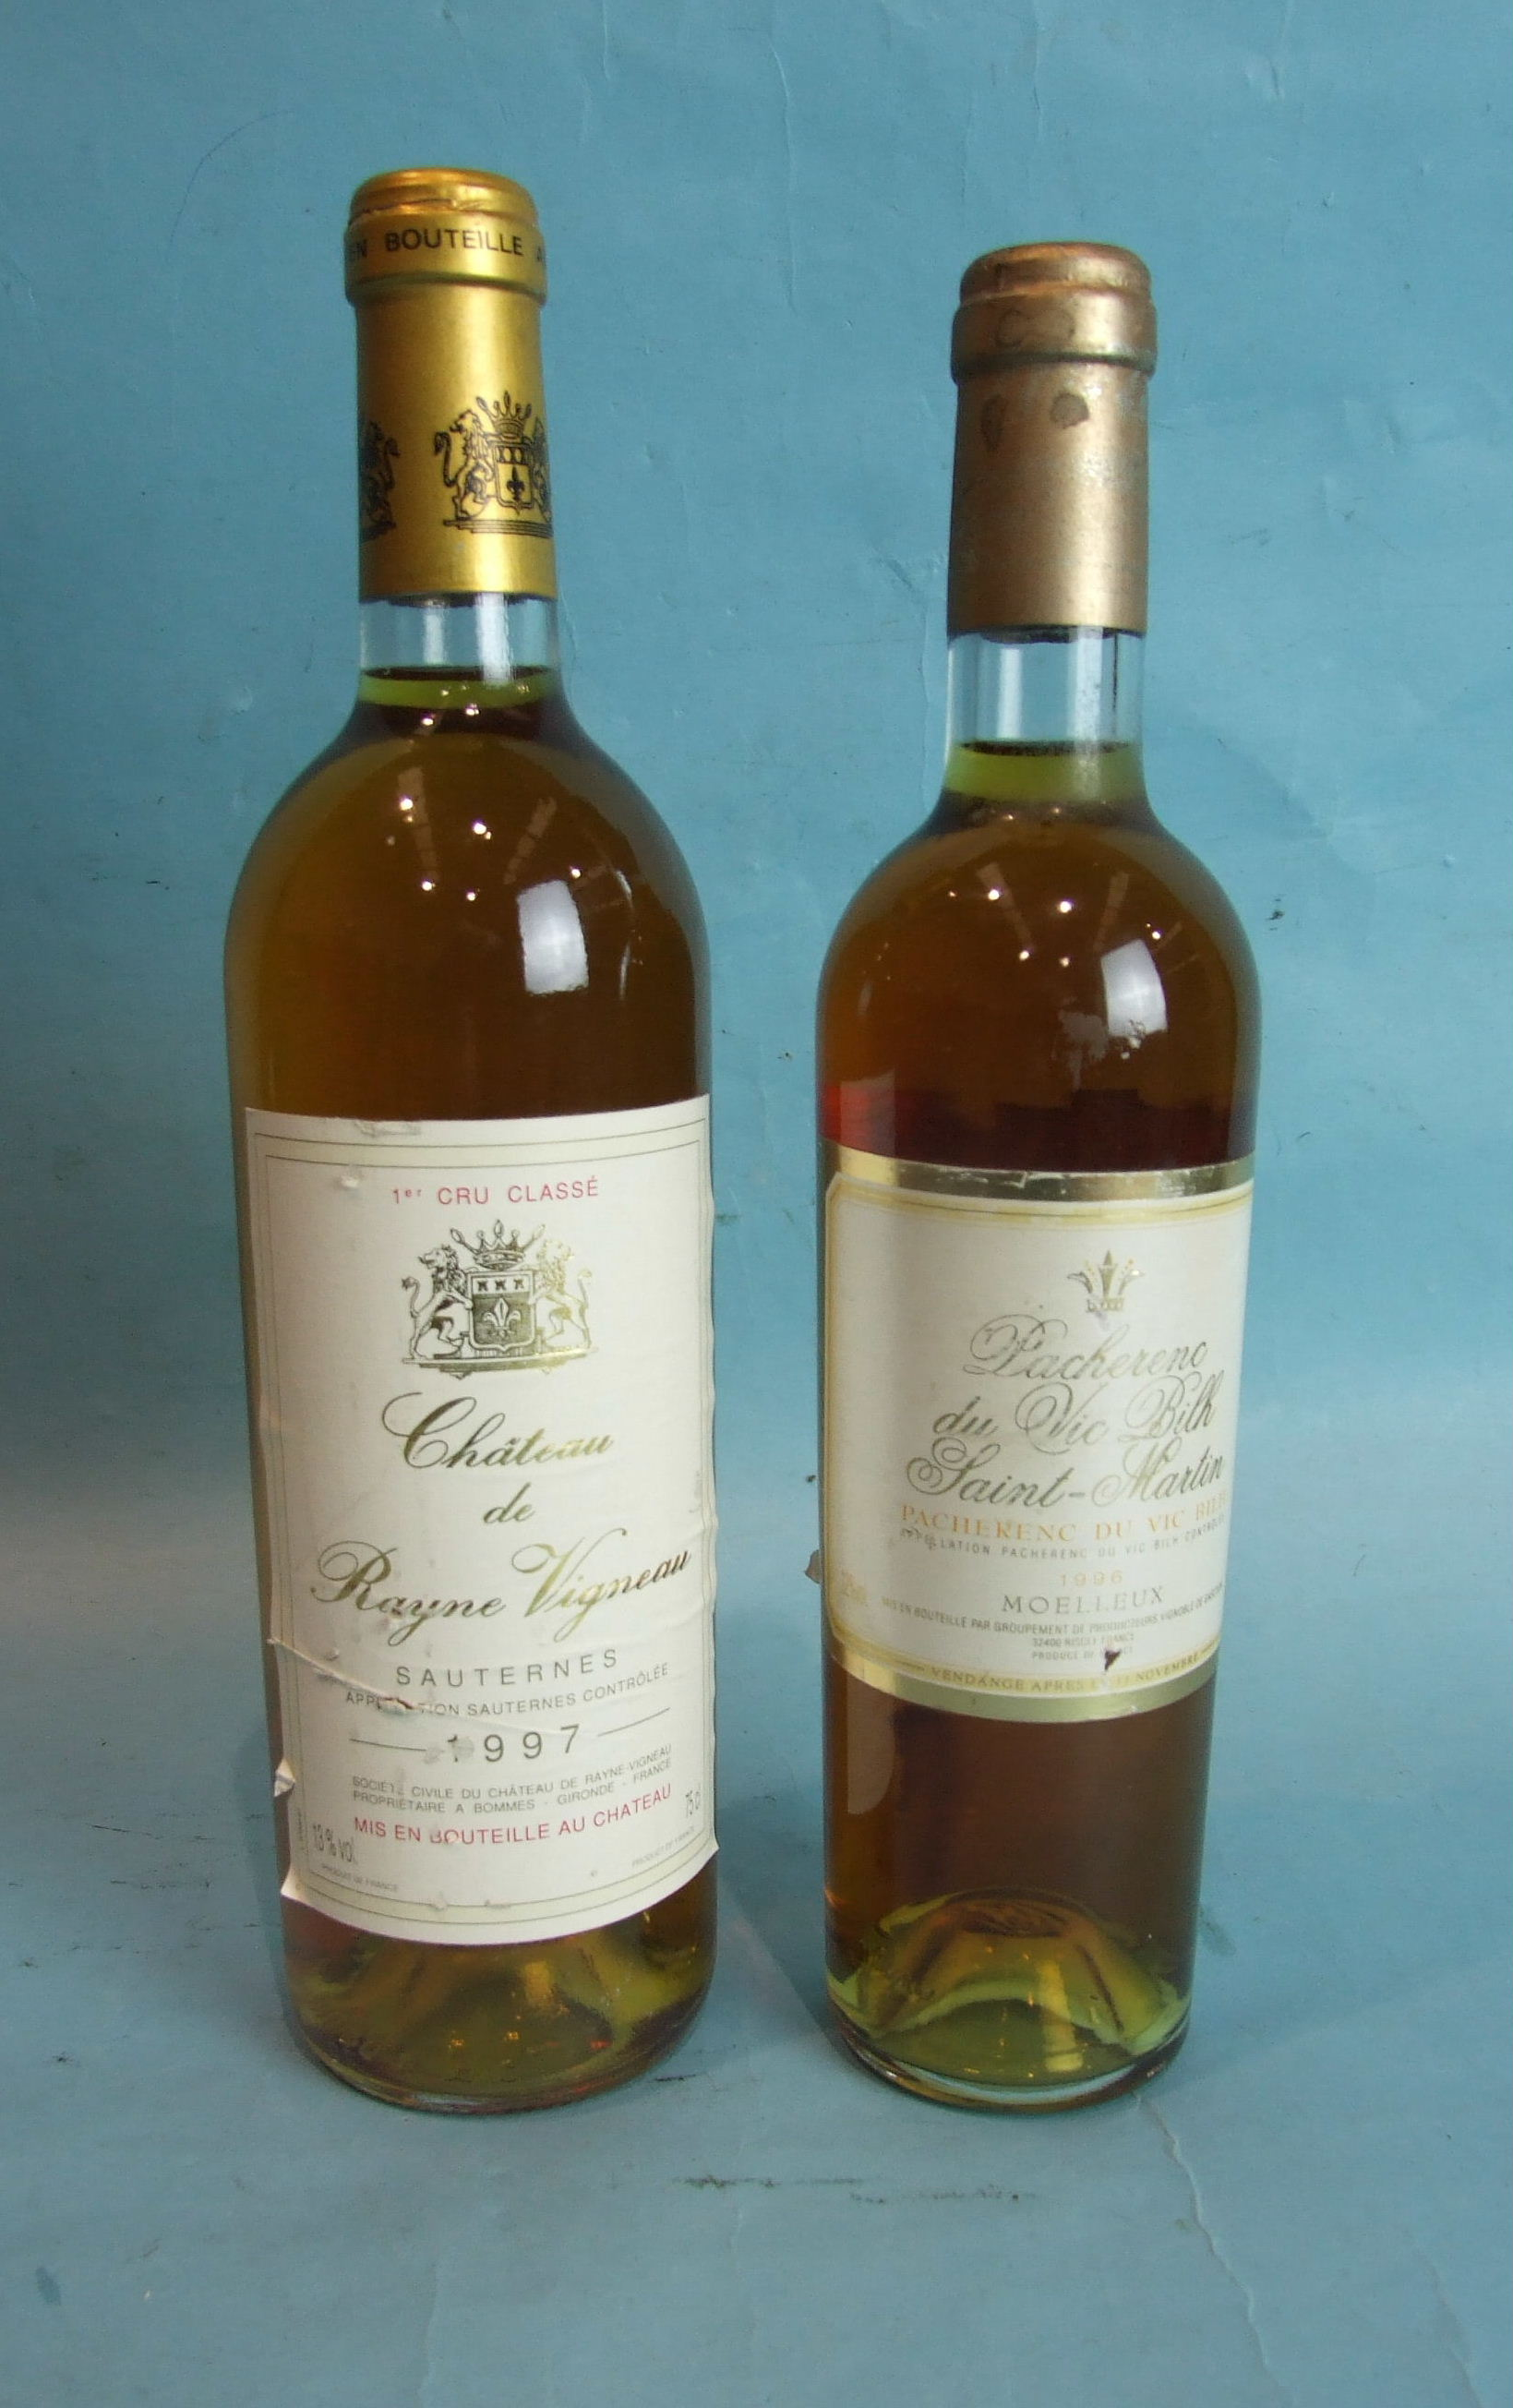 Lot 40 - Chateau de Rayne Vigneau Sauternes 1er Cru Classé 1997, one bottle and another dessert wine,